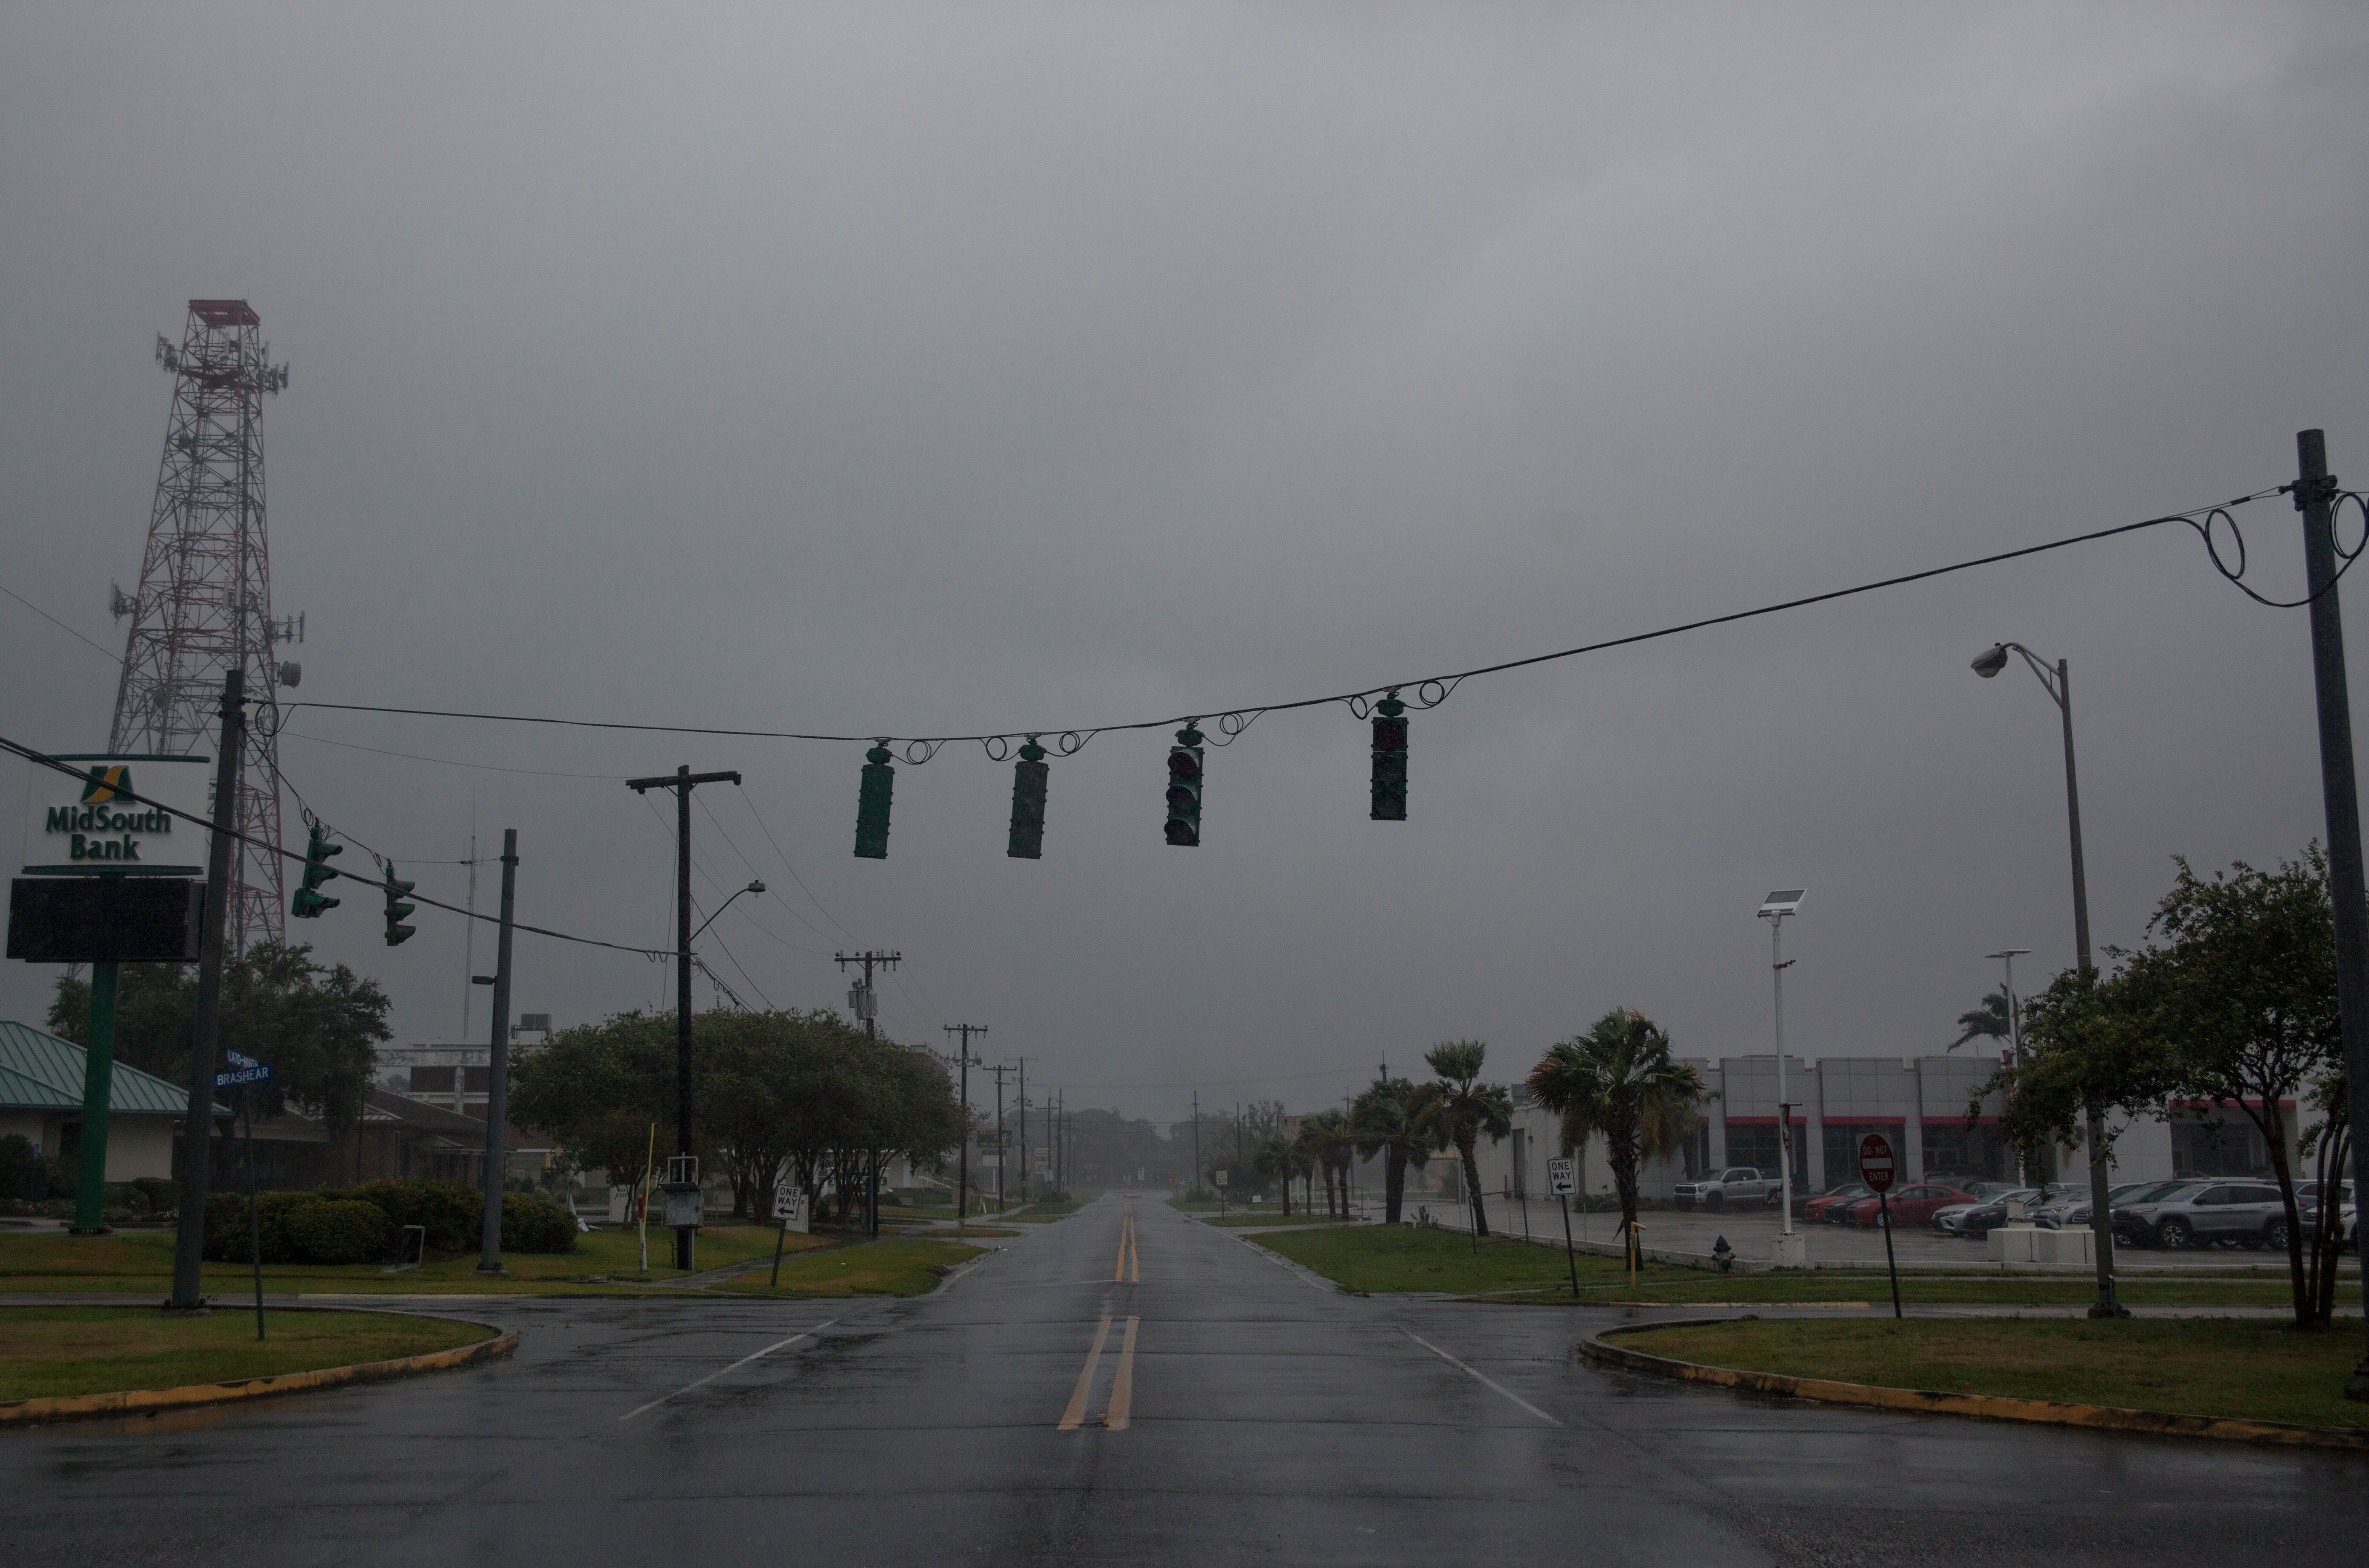 Traffic lights are seen without power in Morgan City, Louisiana, on July 13,2019.